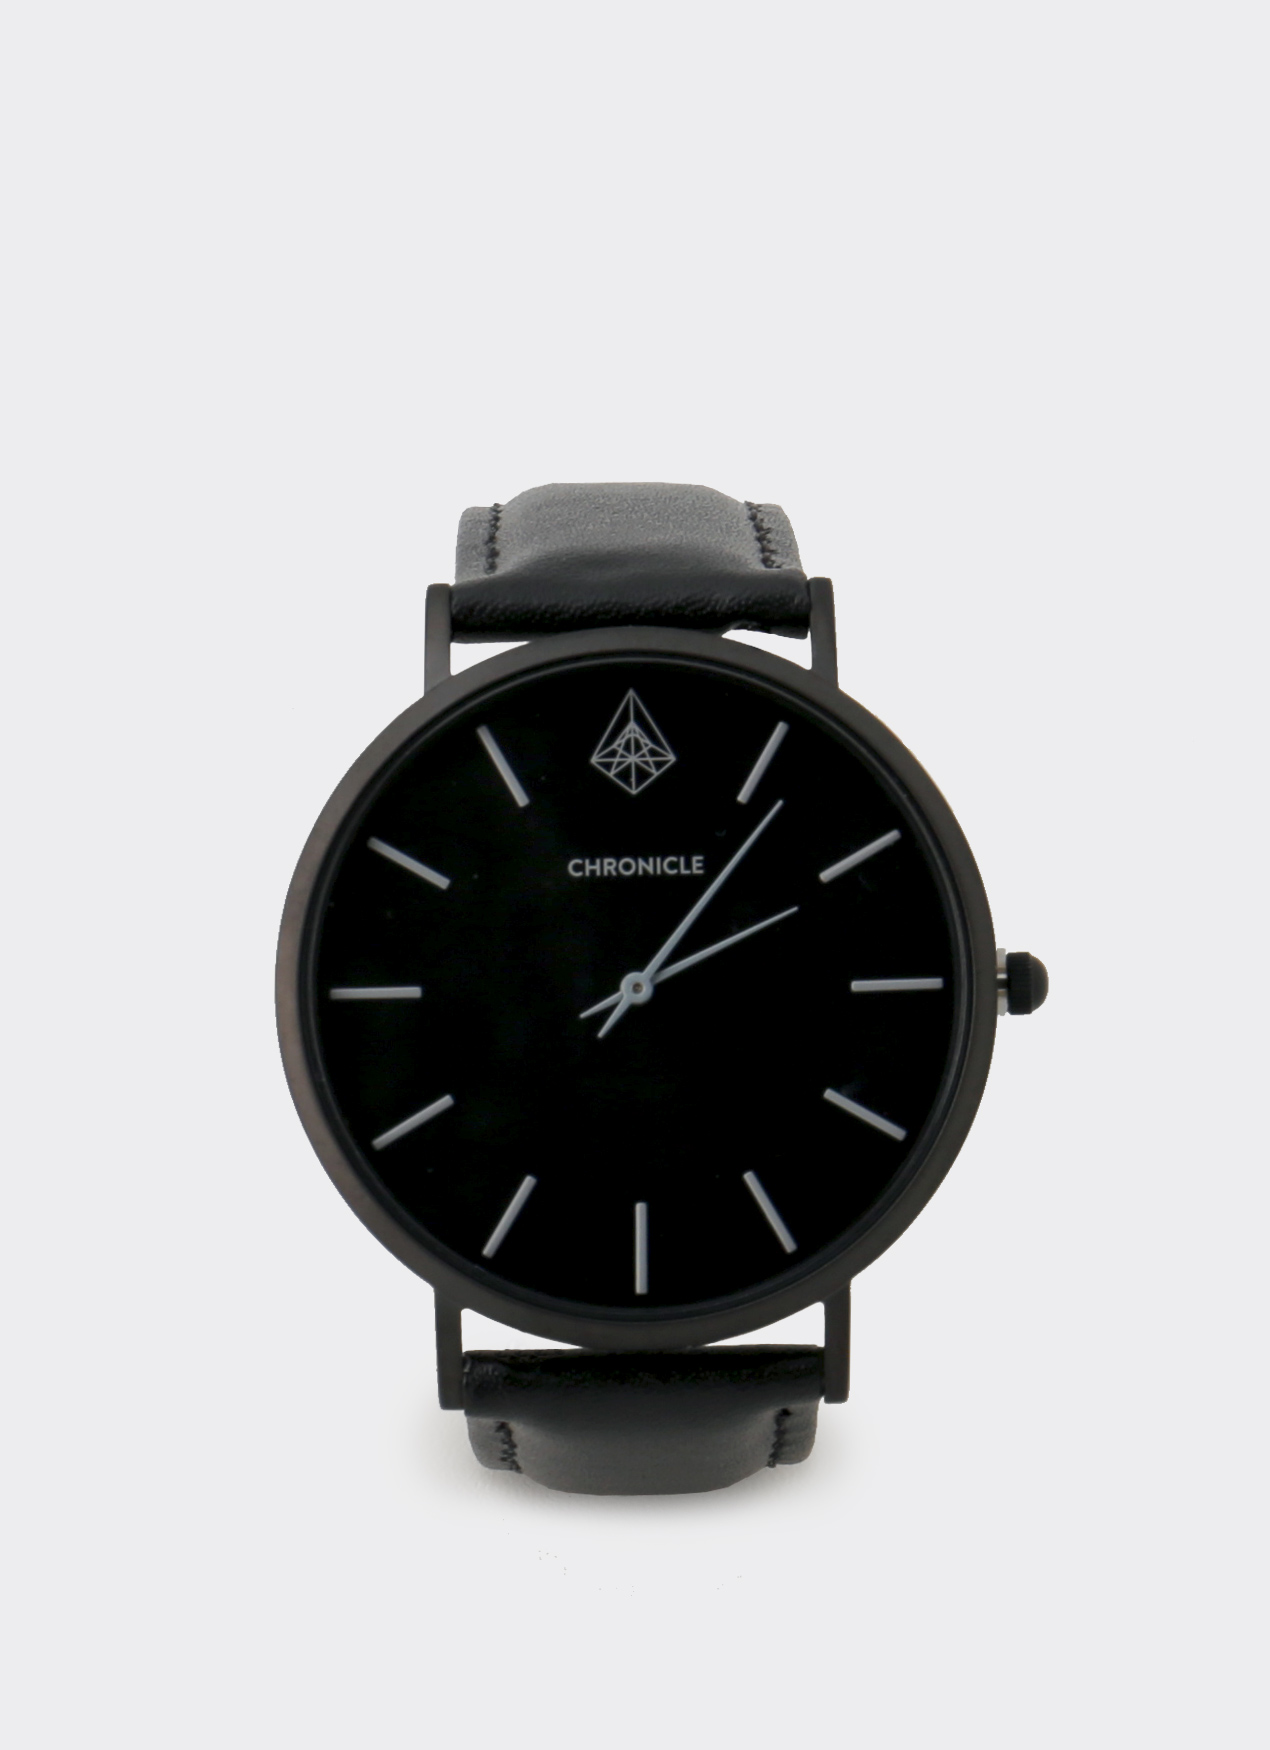 Chronicle Timepiece Black Gray Bouverie 40 mm Watches